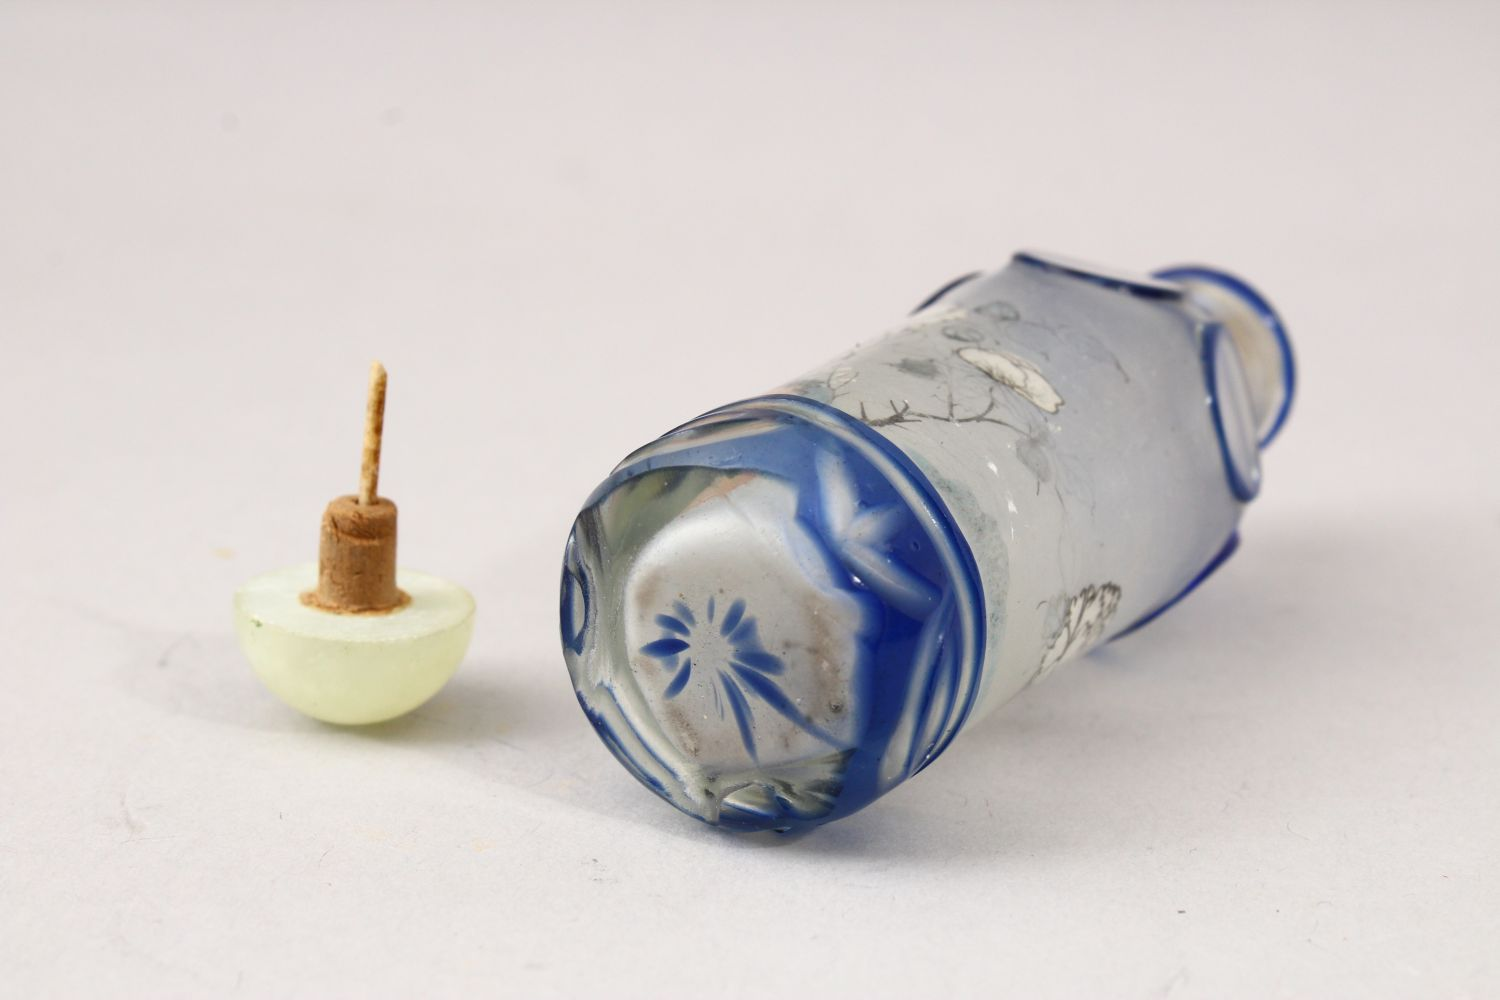 A GOOD 19TH / 20TH CENTURY CHINESE REVERSE PAINTED GLASS & OVERLAY SNUFF BOTTLE, - Image 5 of 5